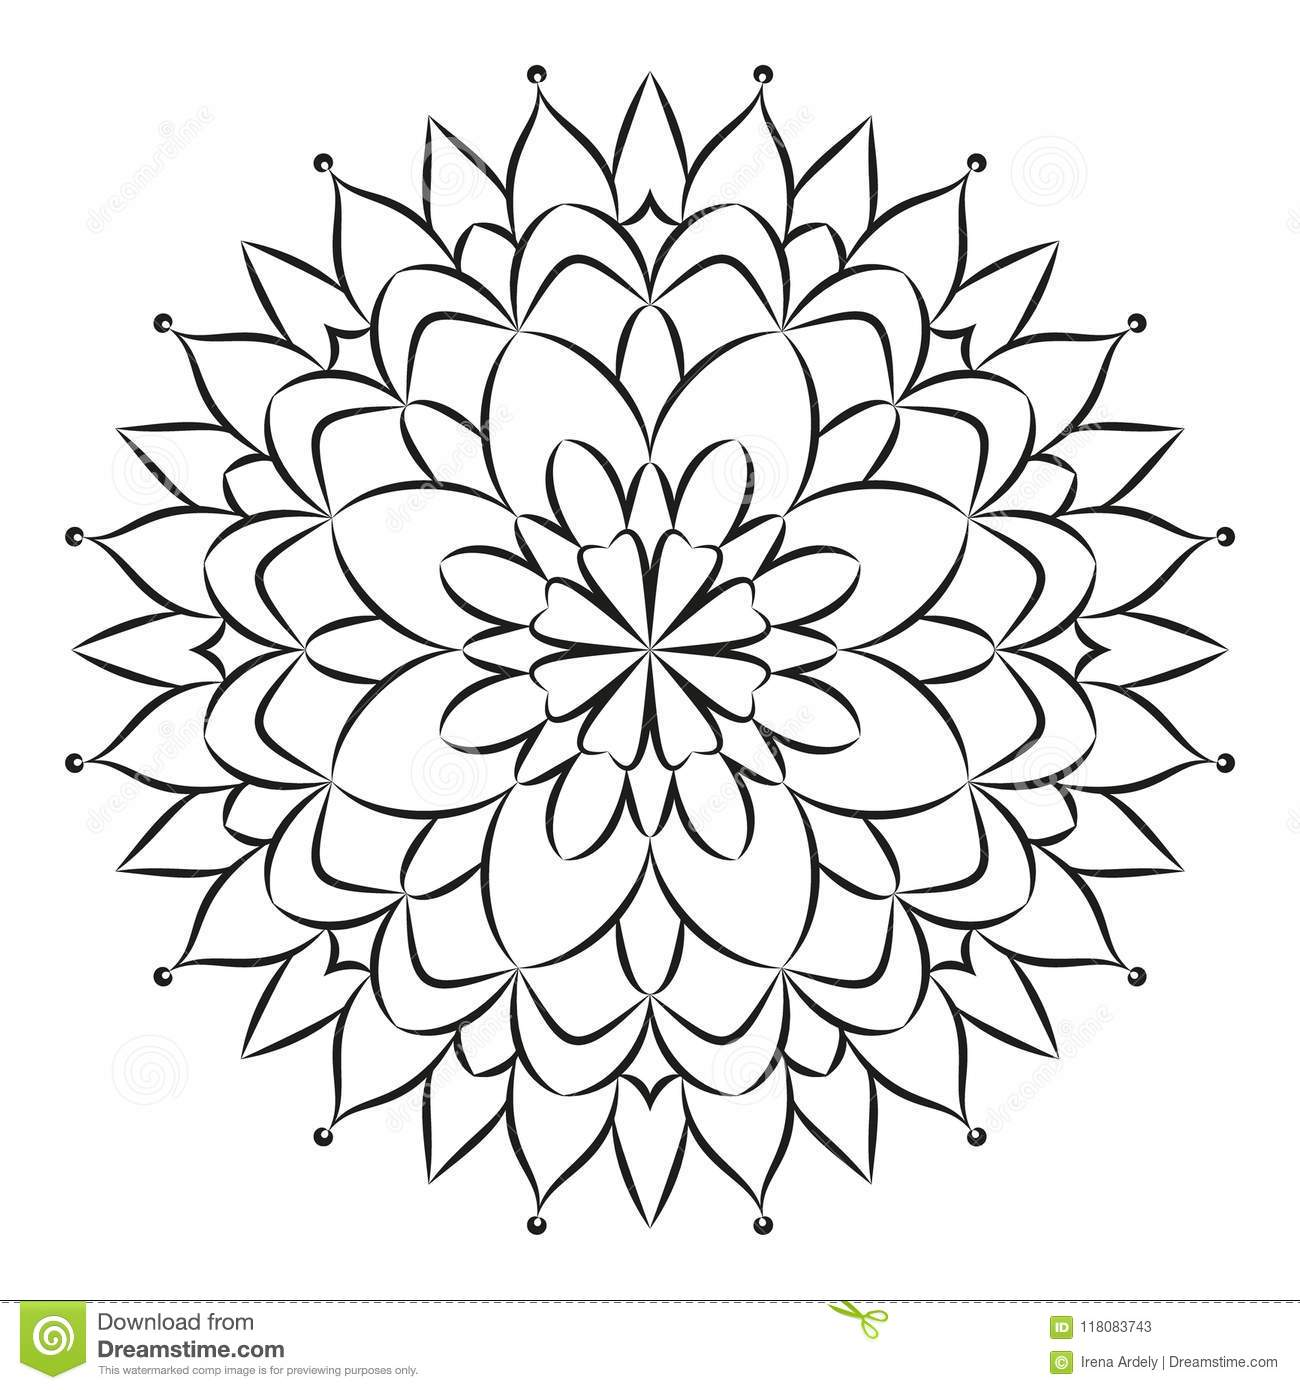 Download Vector Black And White Round Floral Mandala With Simple Flower